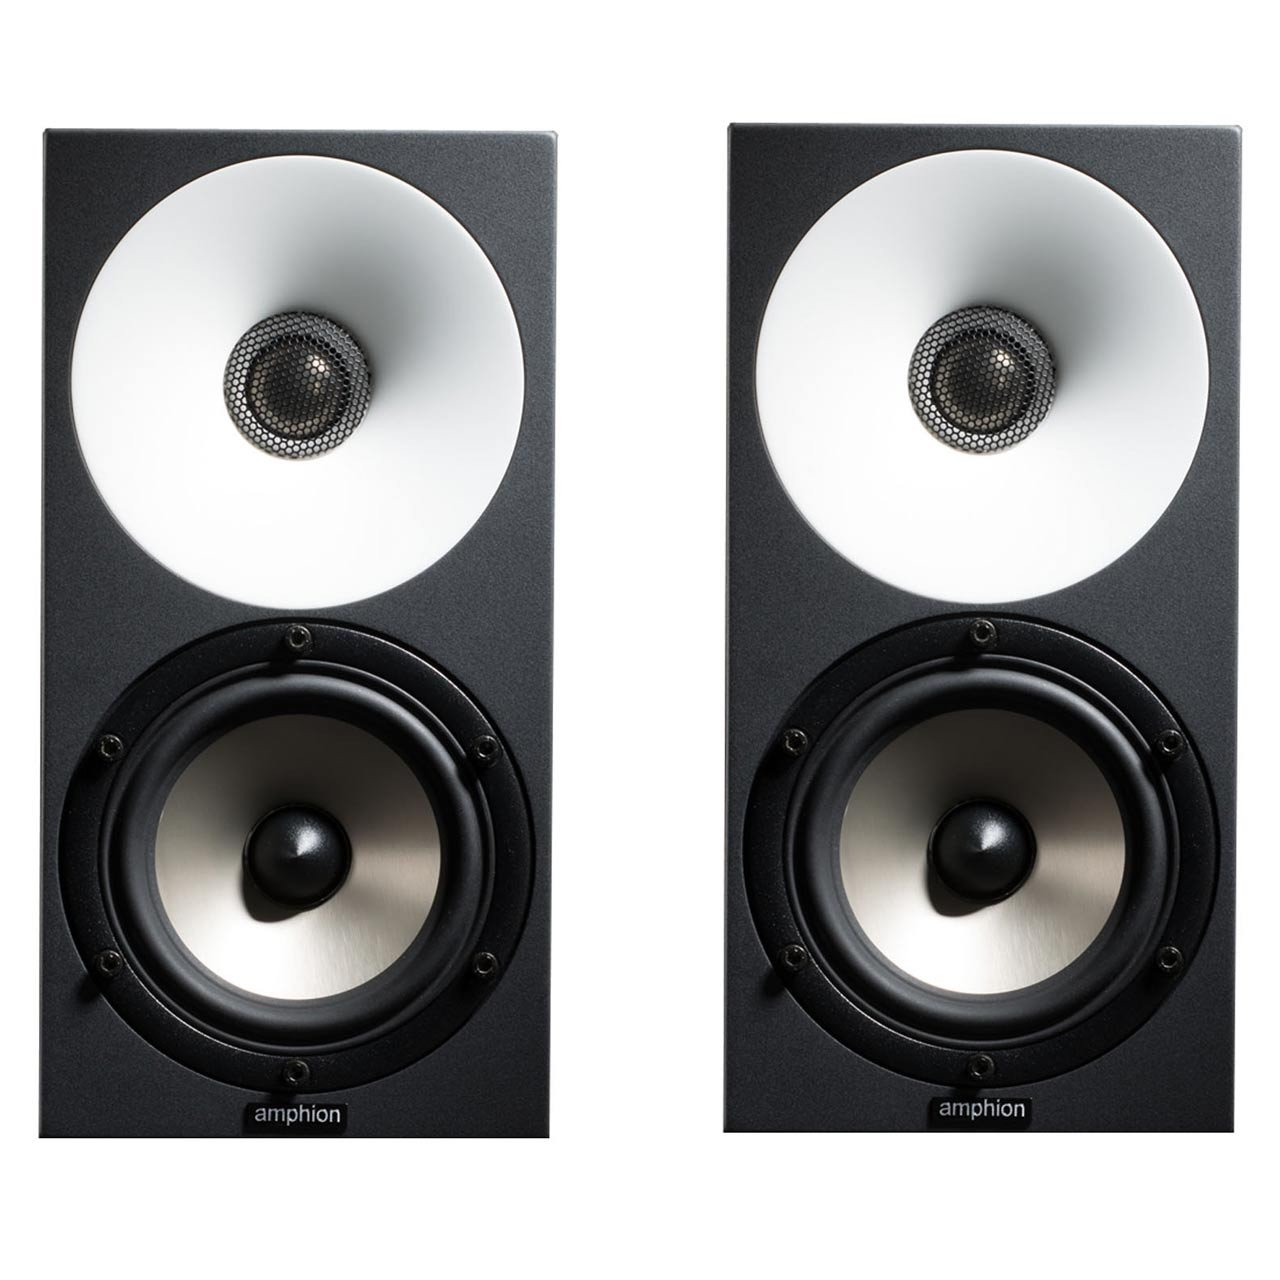 Amphion One12 Passive Studio Reference Monitors (PAIR)